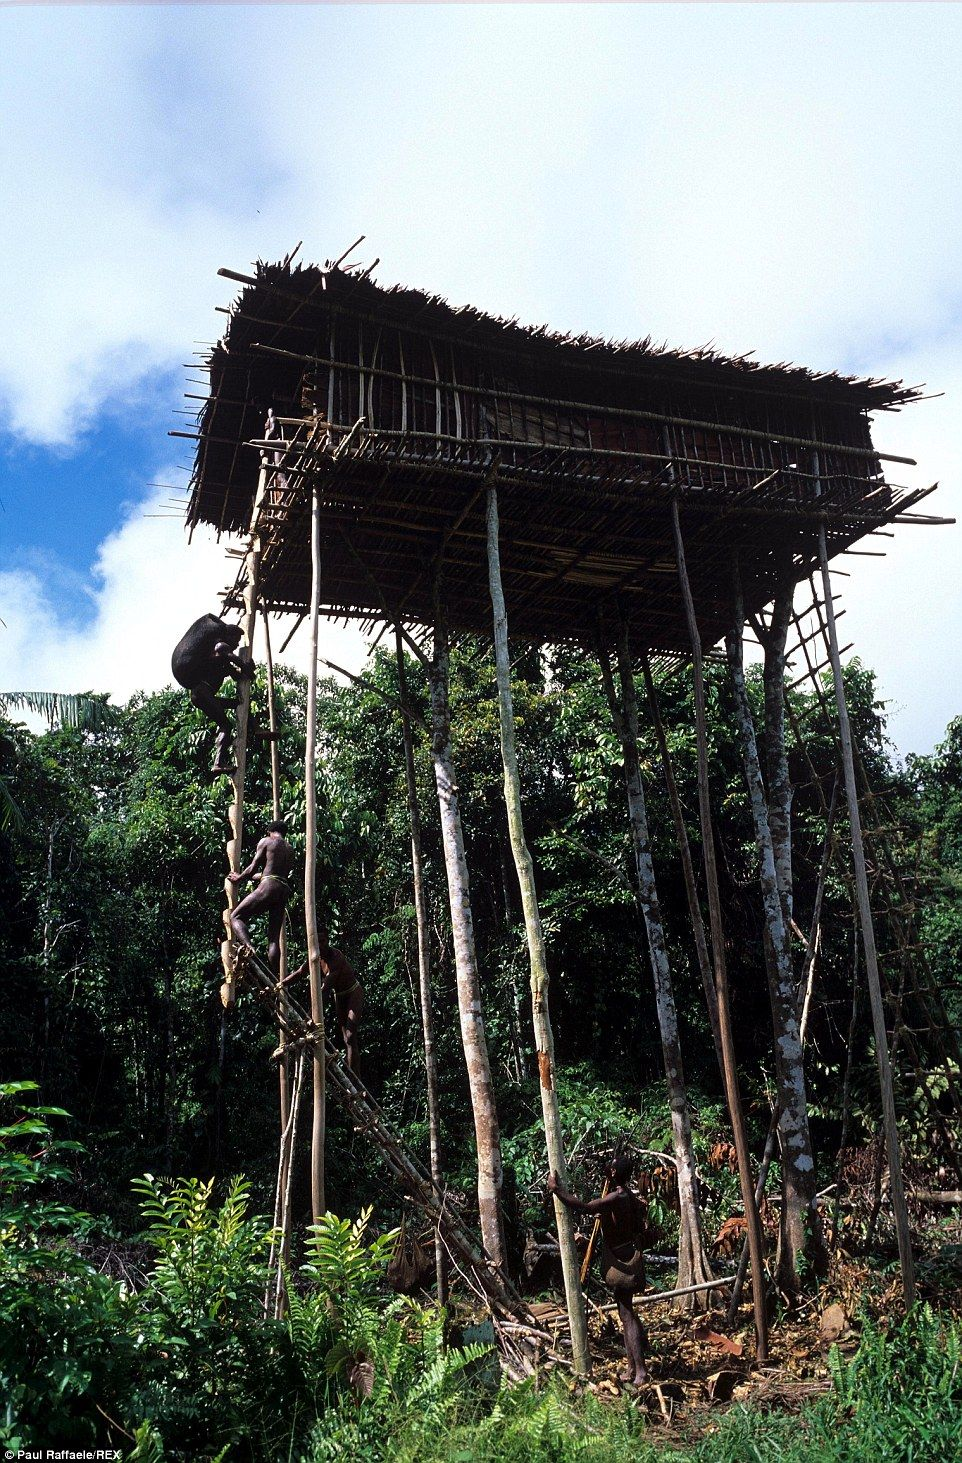 Meet the Lost Treehouse tribe of New Guinea | house | West papua